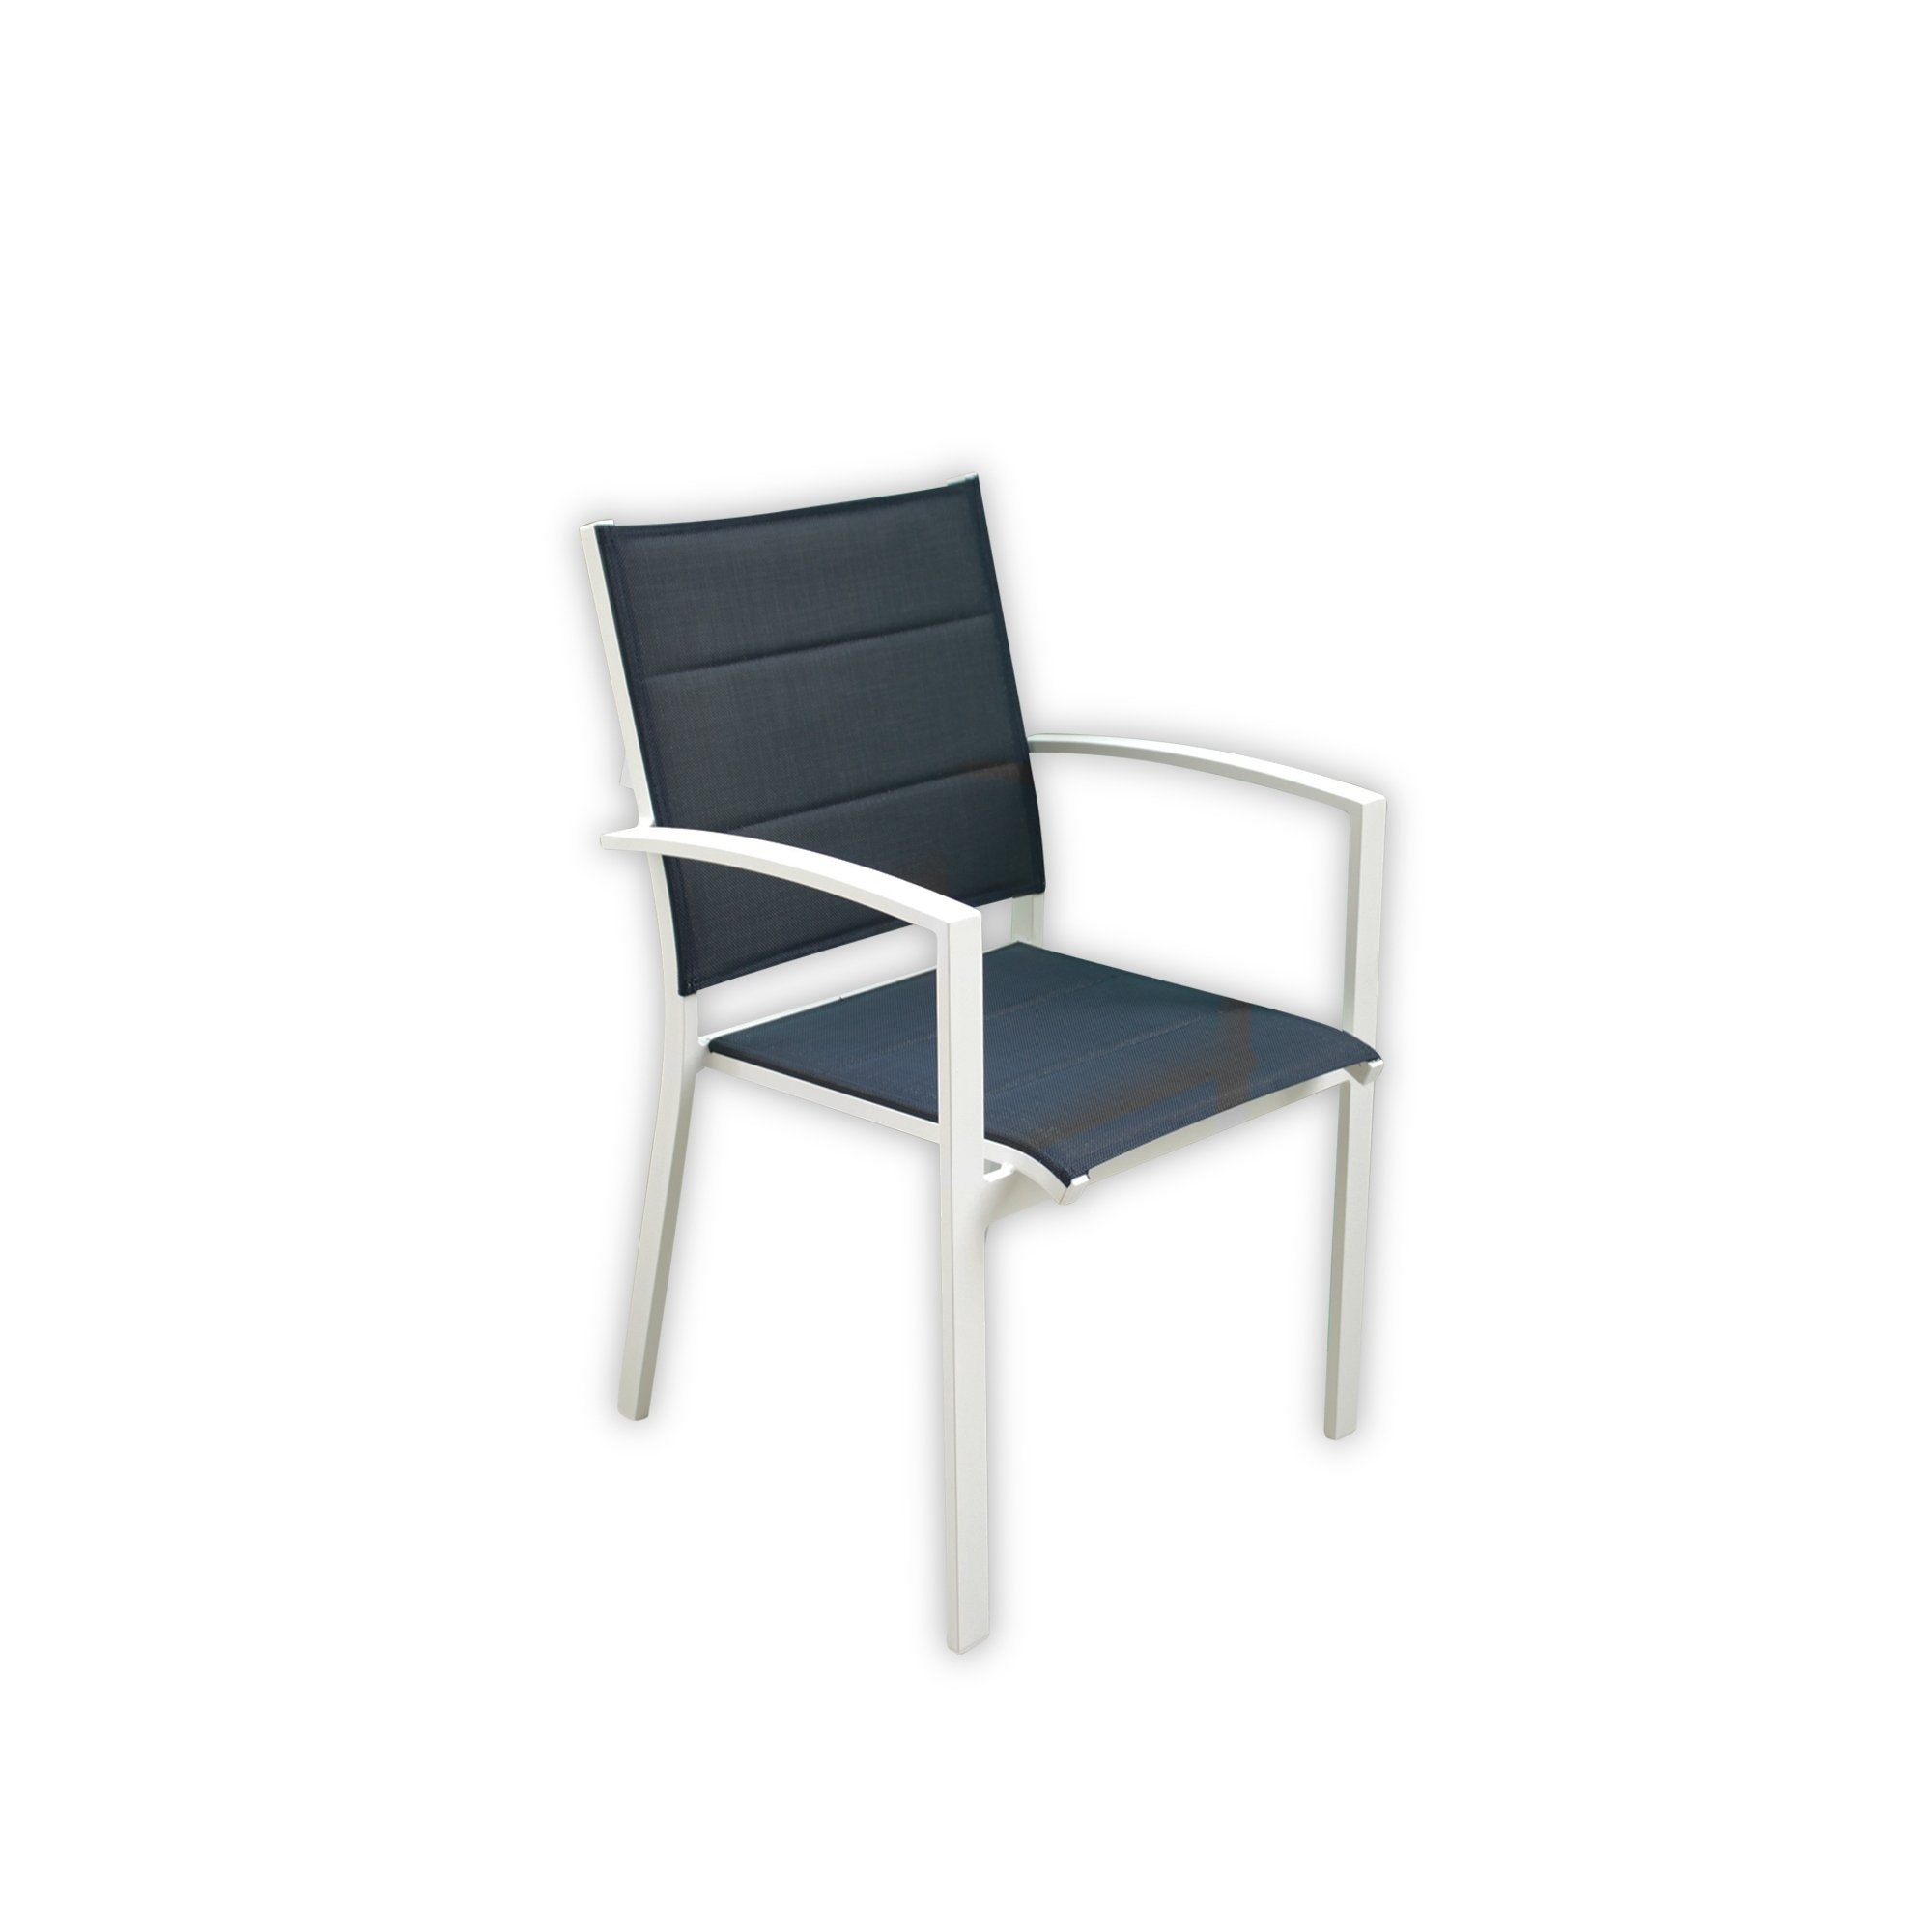 Wondrous Courtyard Casual Skyline White Aluminum Outdoor Dining Chair Ibusinesslaw Wood Chair Design Ideas Ibusinesslaworg